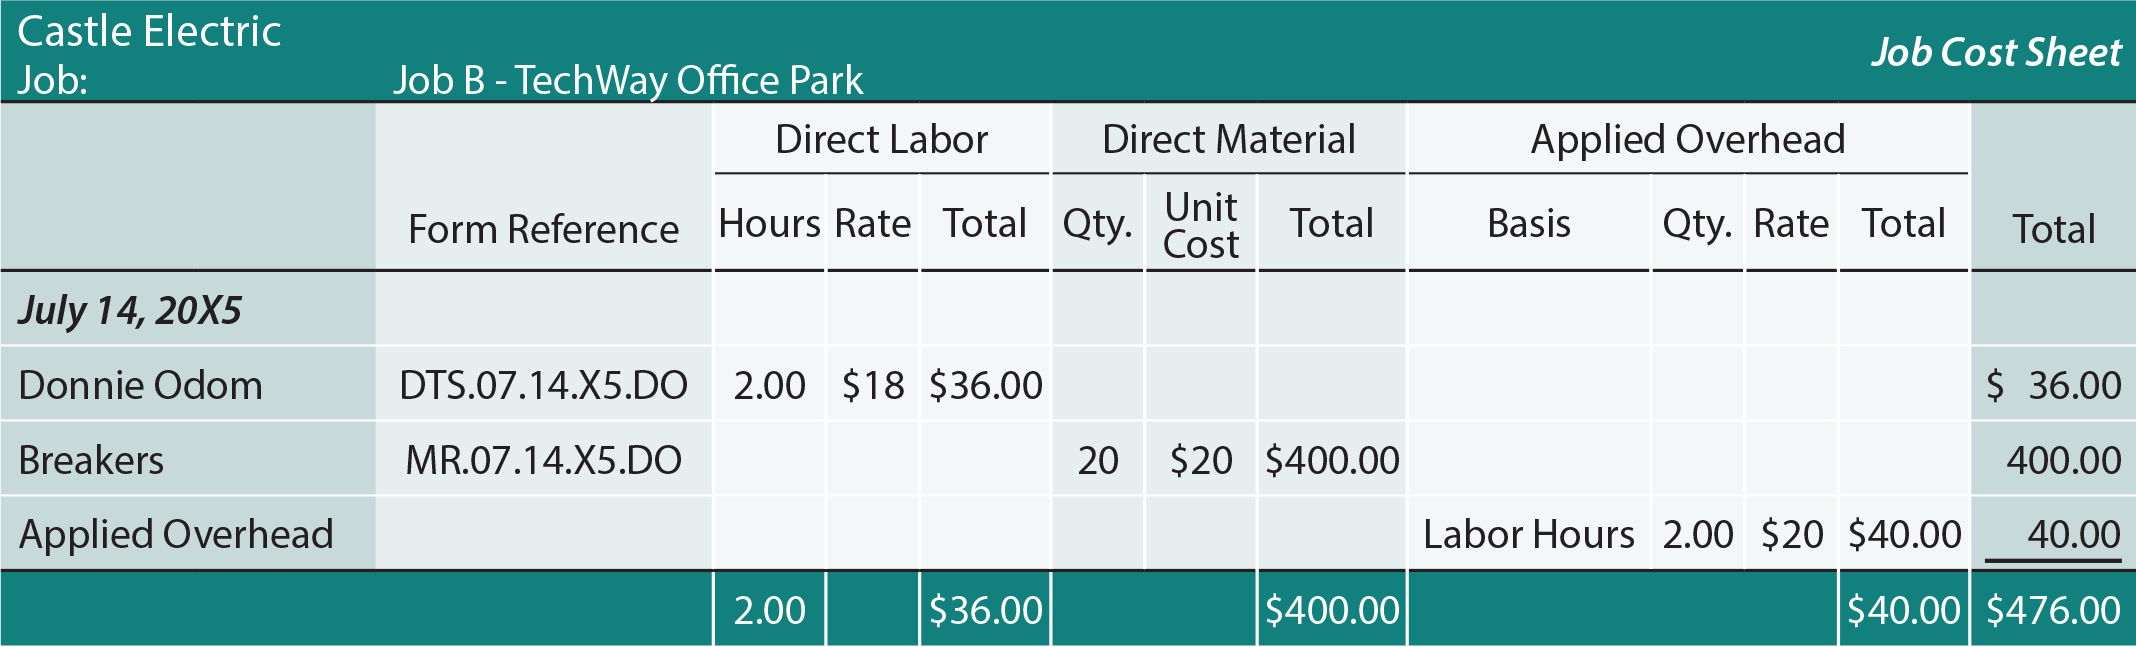 Job Costing Sheet - Job B